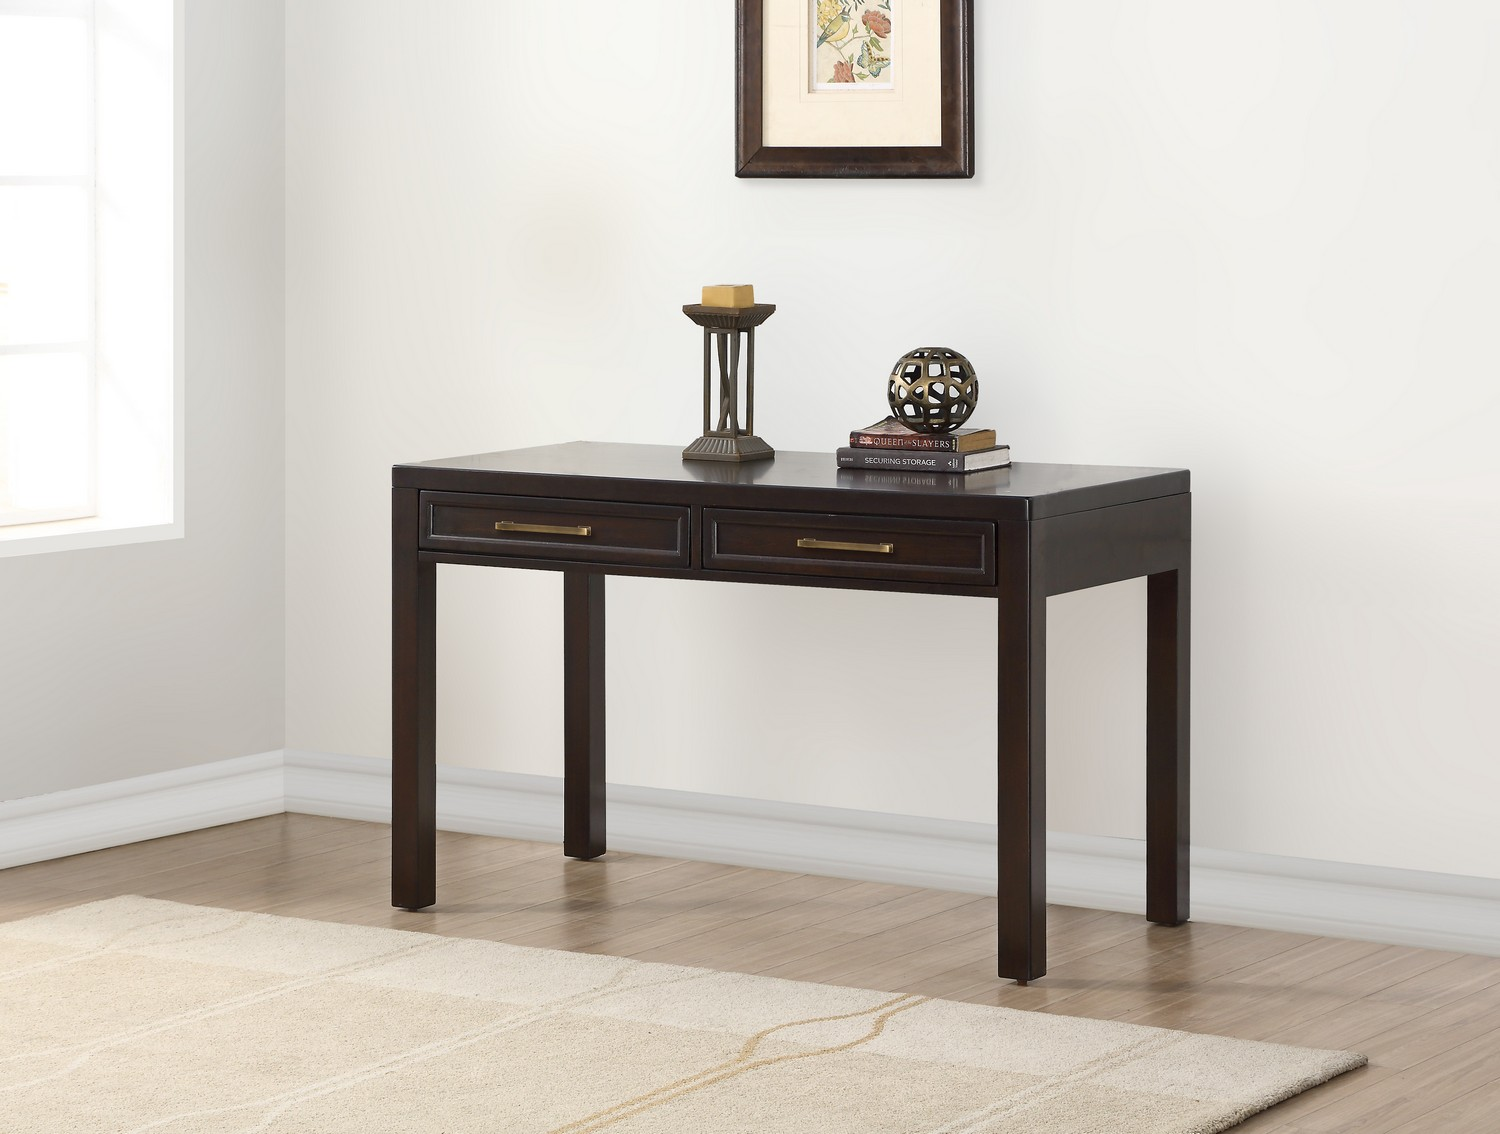 Parker House Greenwich 48-inch Writing Desk - Dark Walnut